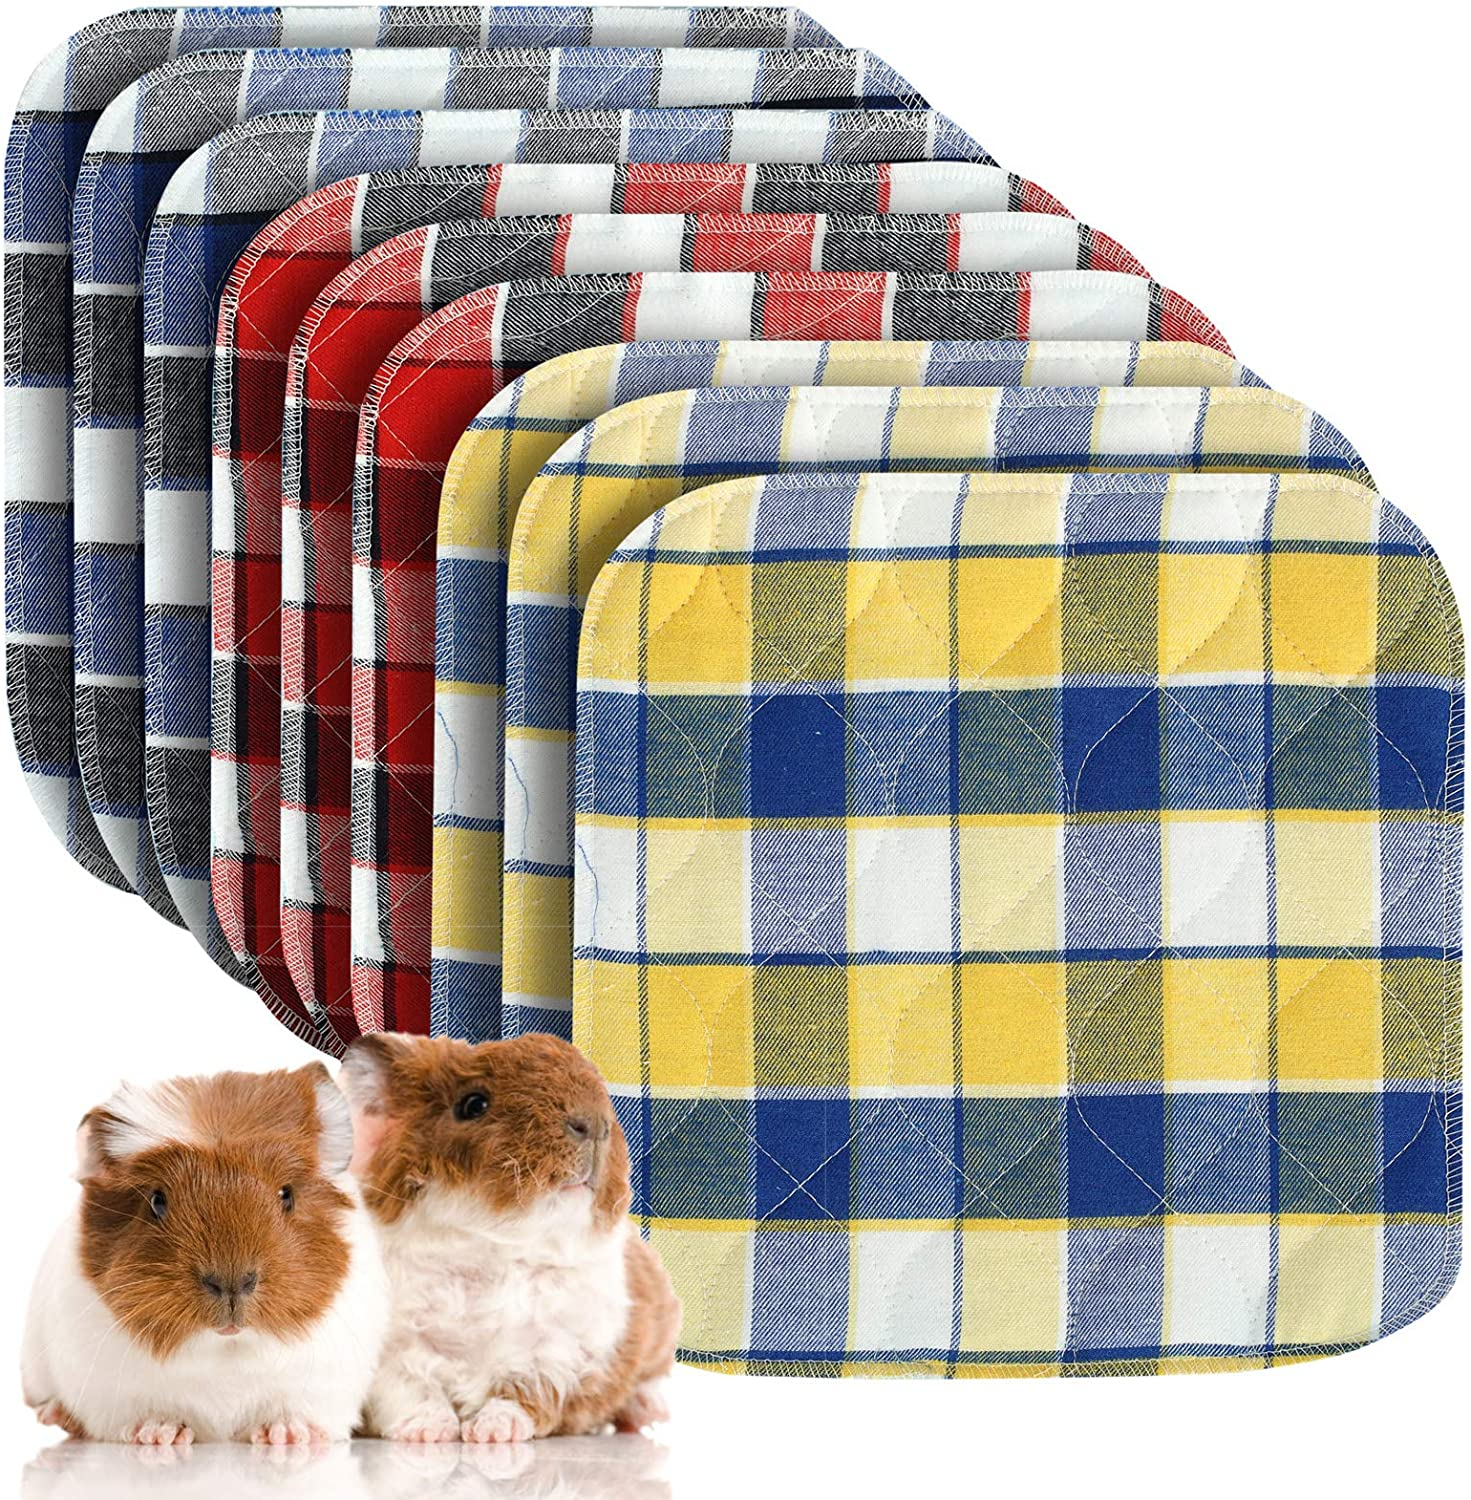 Pack of 9 Guinea Pig Washable Pee Pads- 10 × 10 Inch Fast Absorbent Non-Slip Guinea Pig Beddings Reusable Cage Liners for Puppy, Rabbits, Hamsters, Bunnies, Gerbils, Other Small Animals